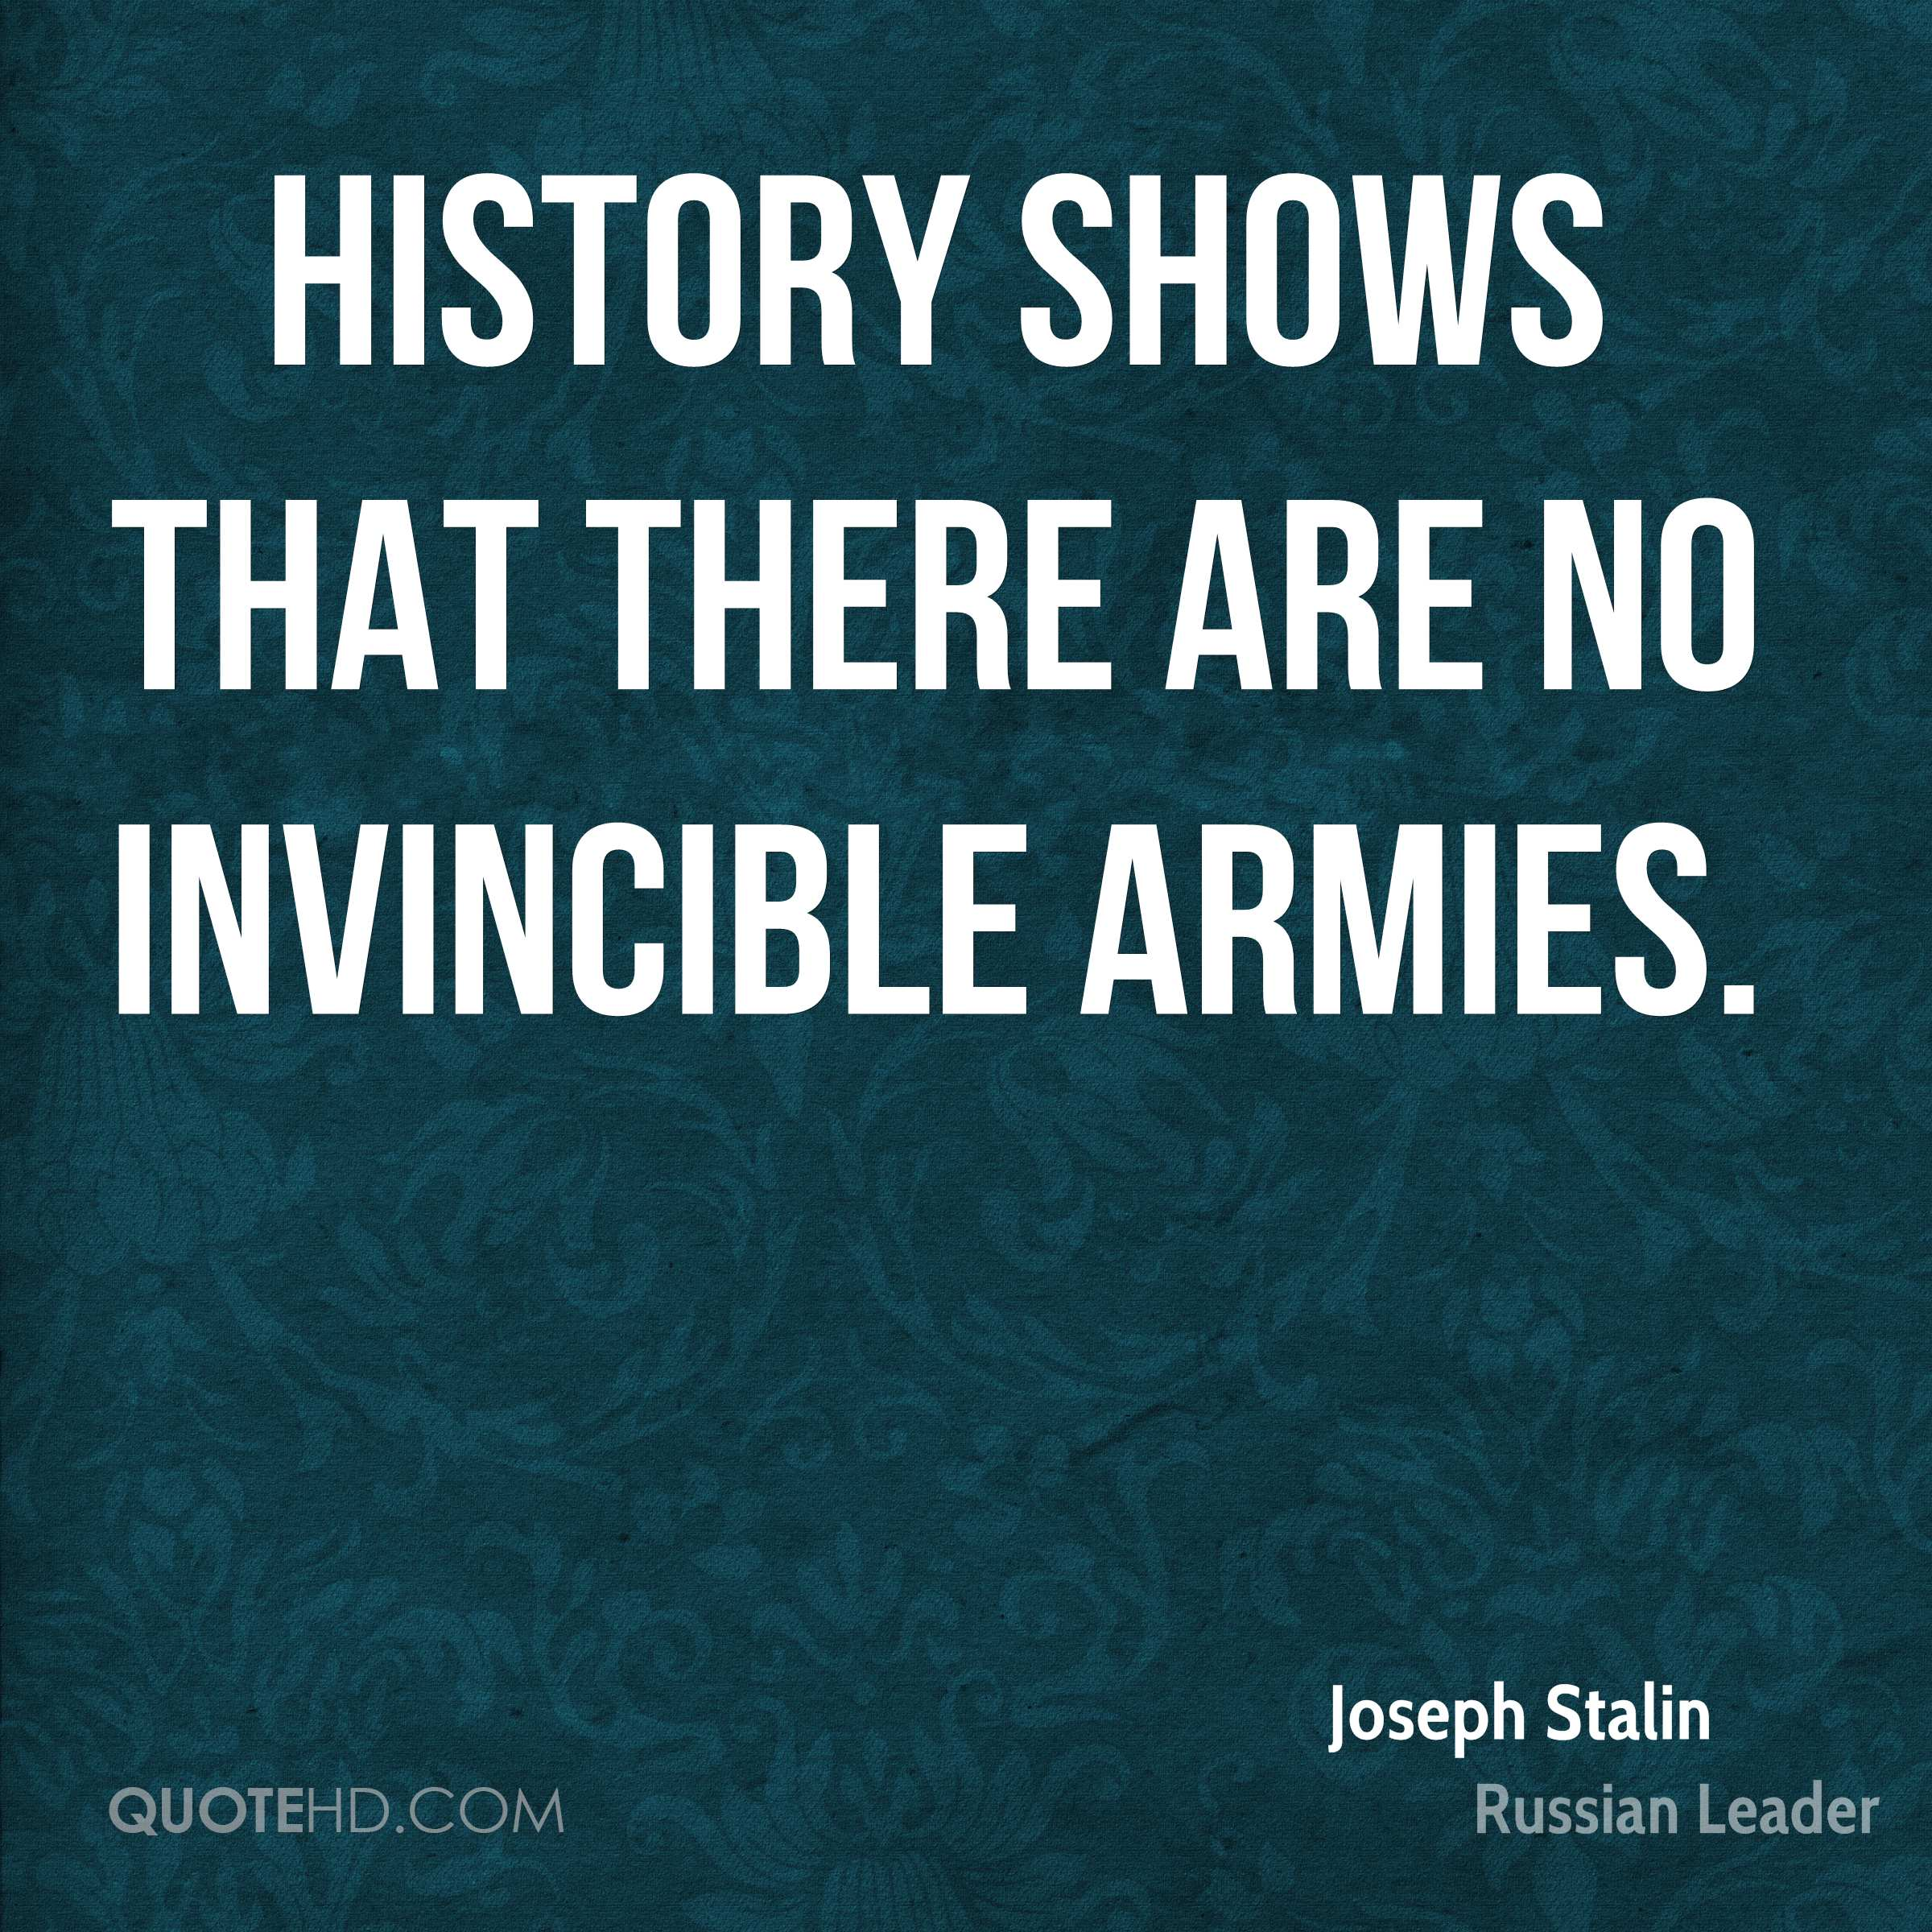 History shows that there are no invincible armies.